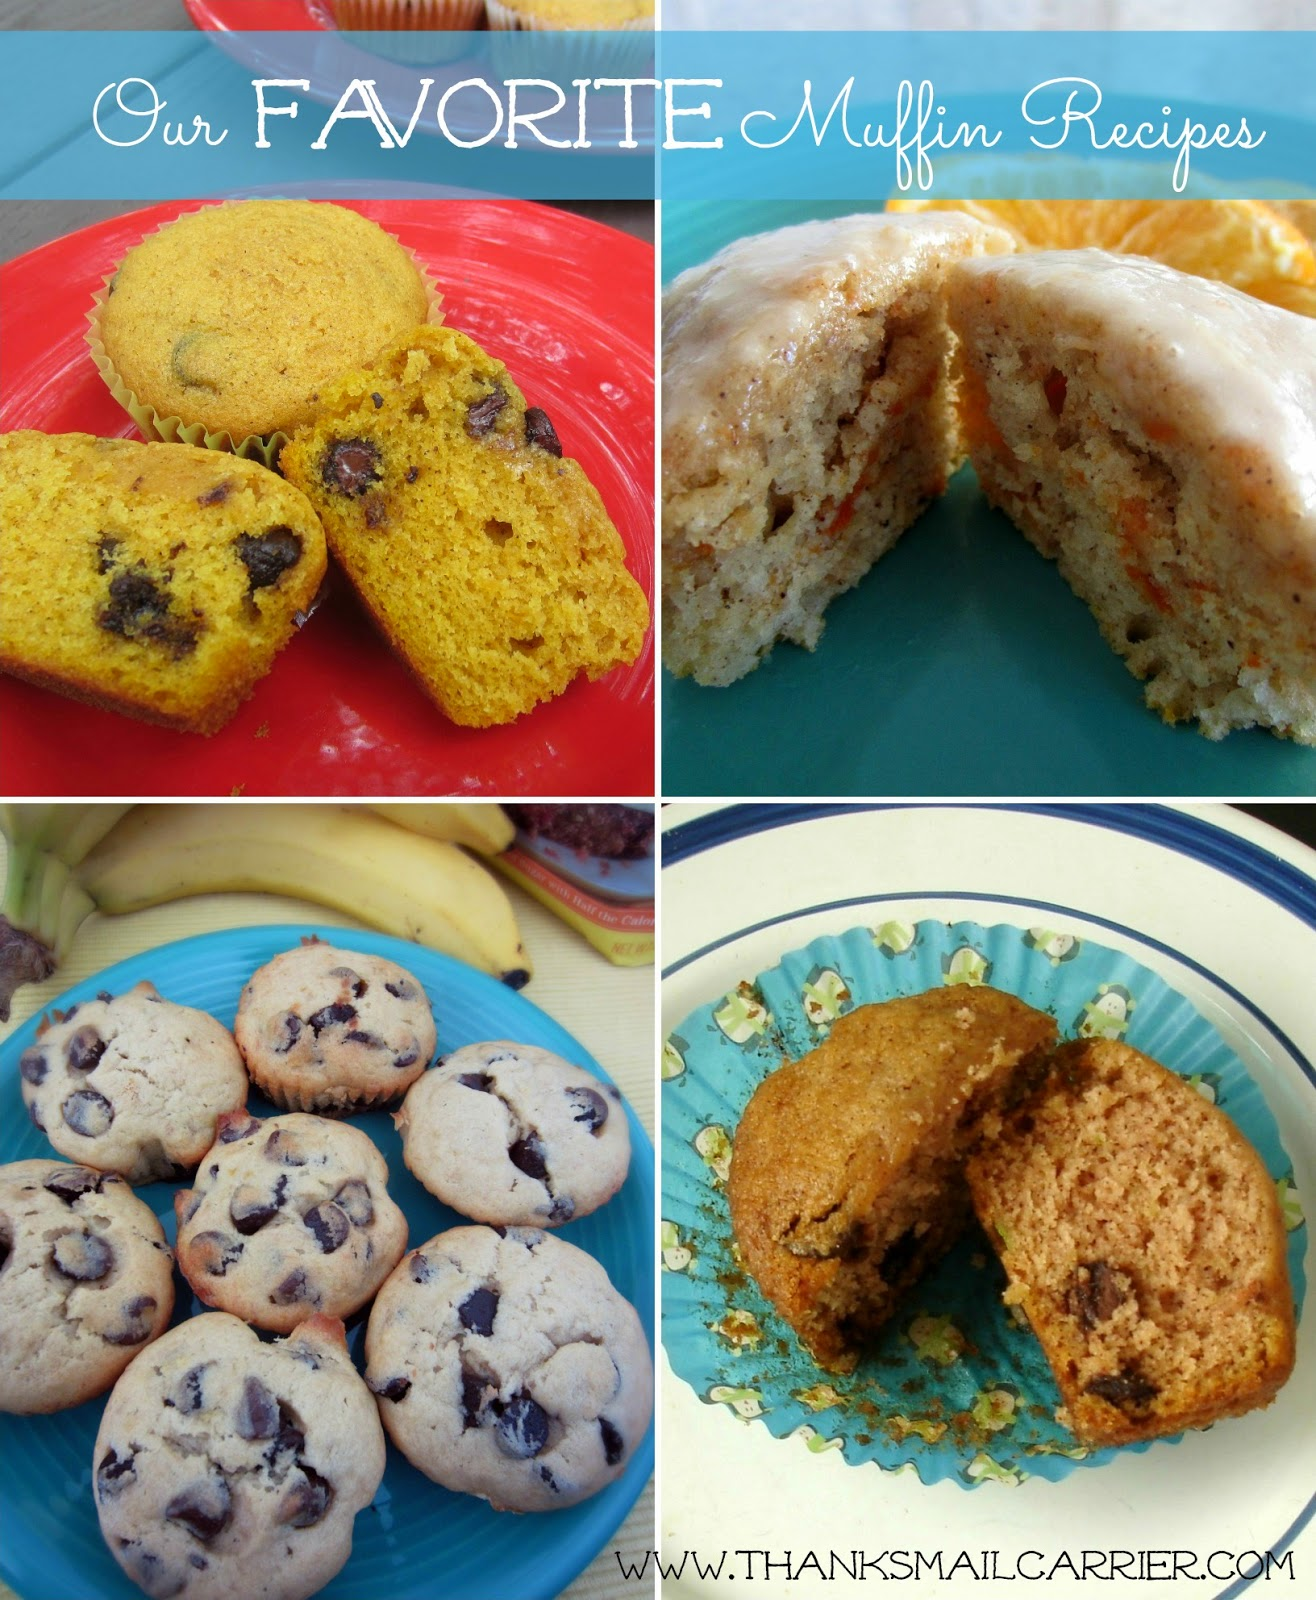 favorite muffin recipes